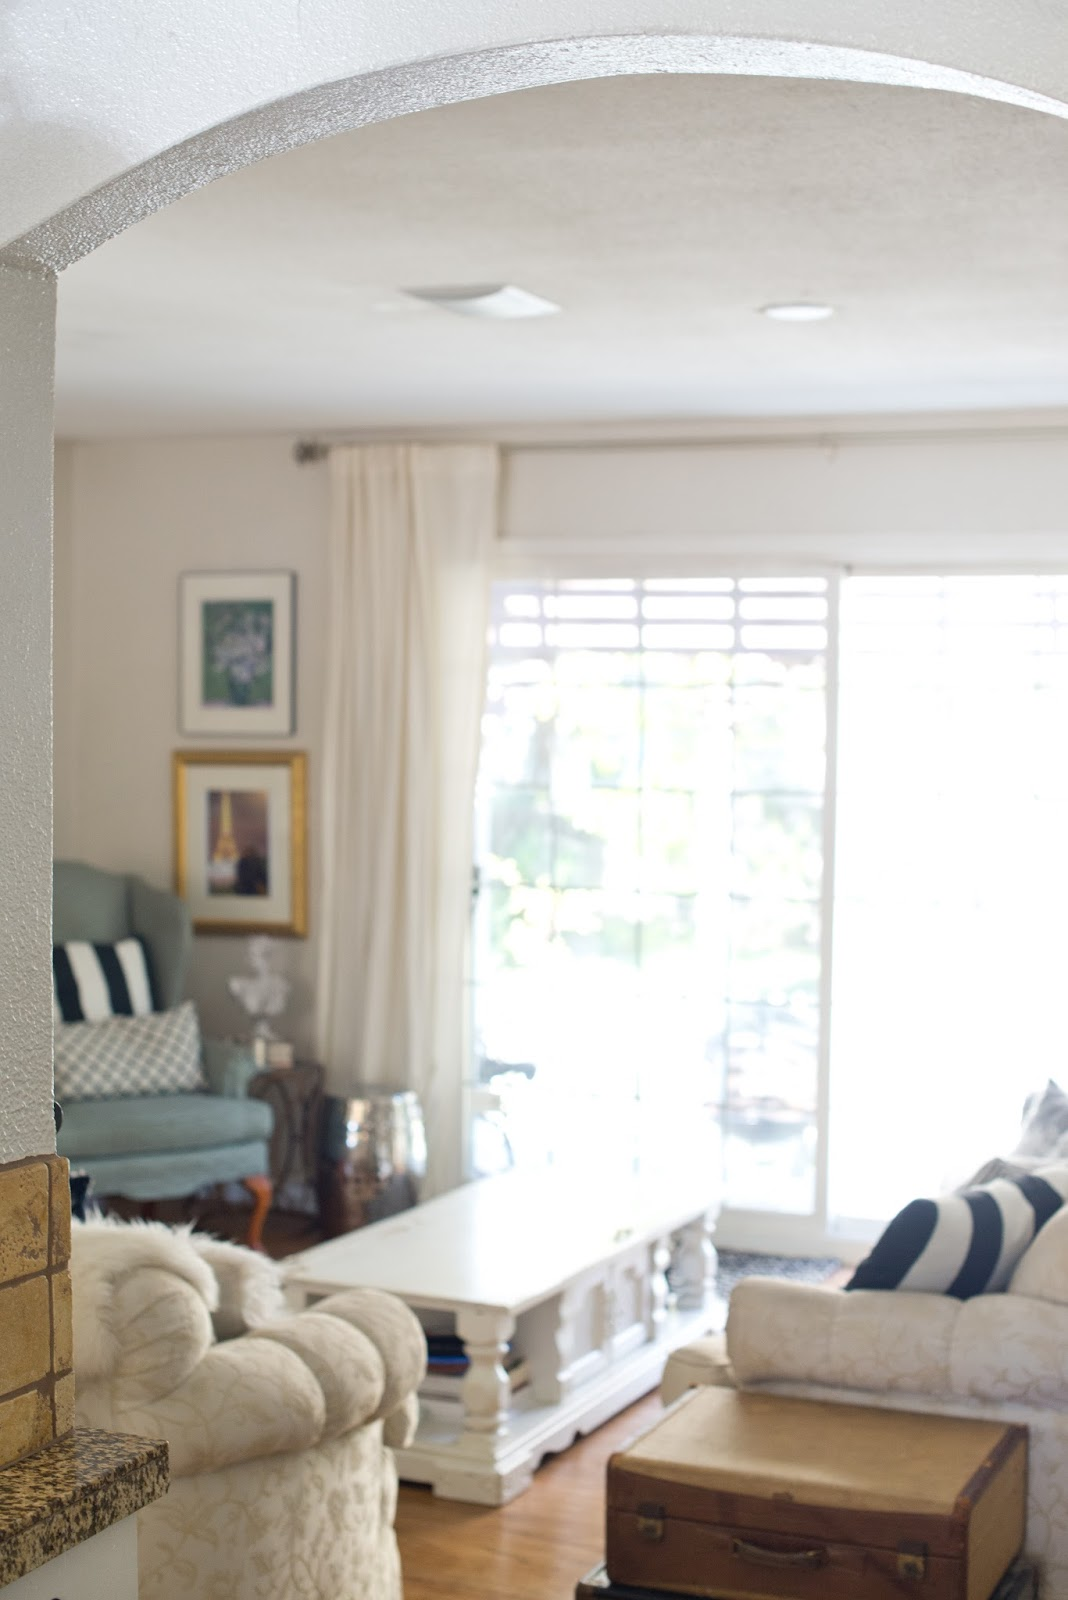 One Of My Favorite Aspects The Room Is Gallery Wall That Creeps Over Entryway It Was Last Element I Added To As Felt Too